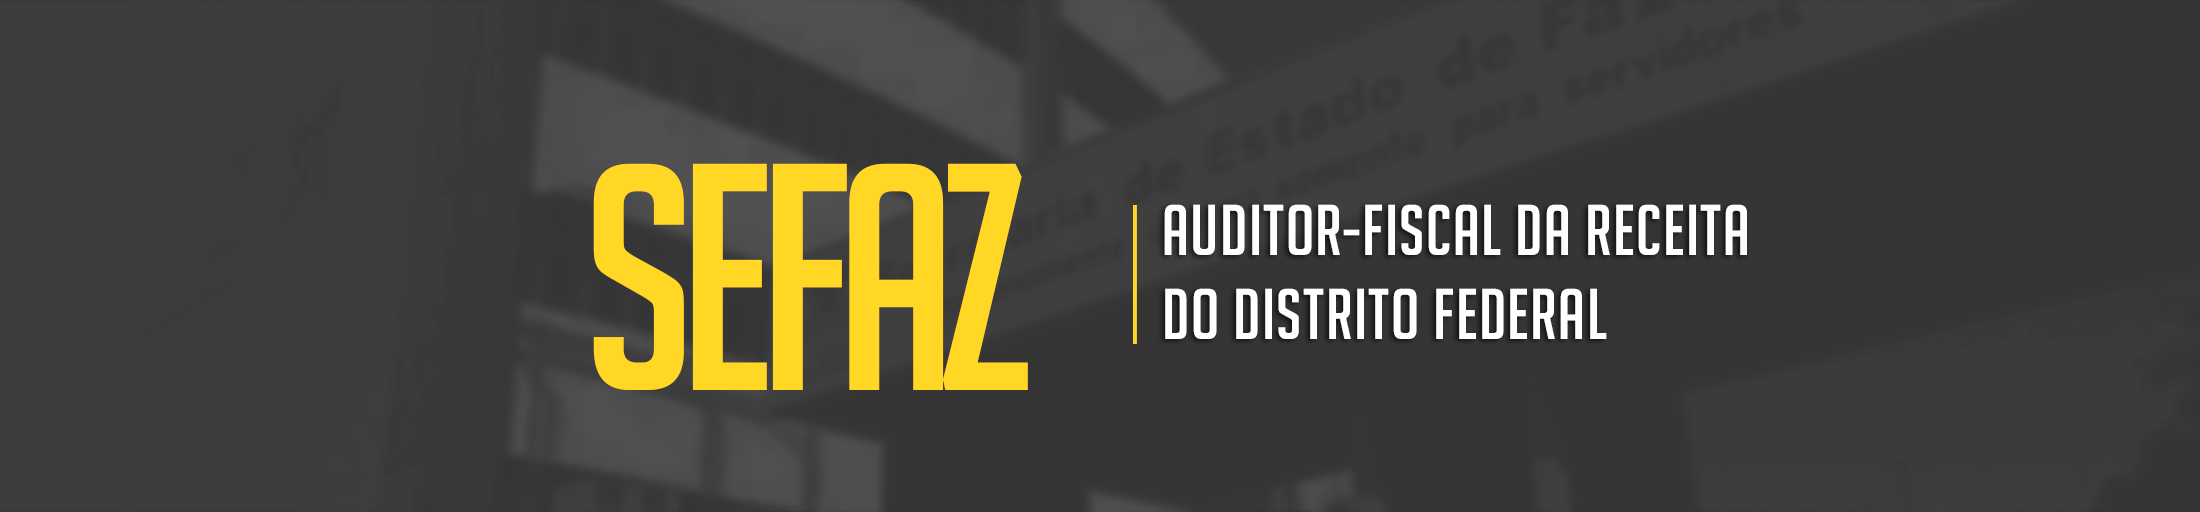 SEFAZ-AUDITOR-FISCAL